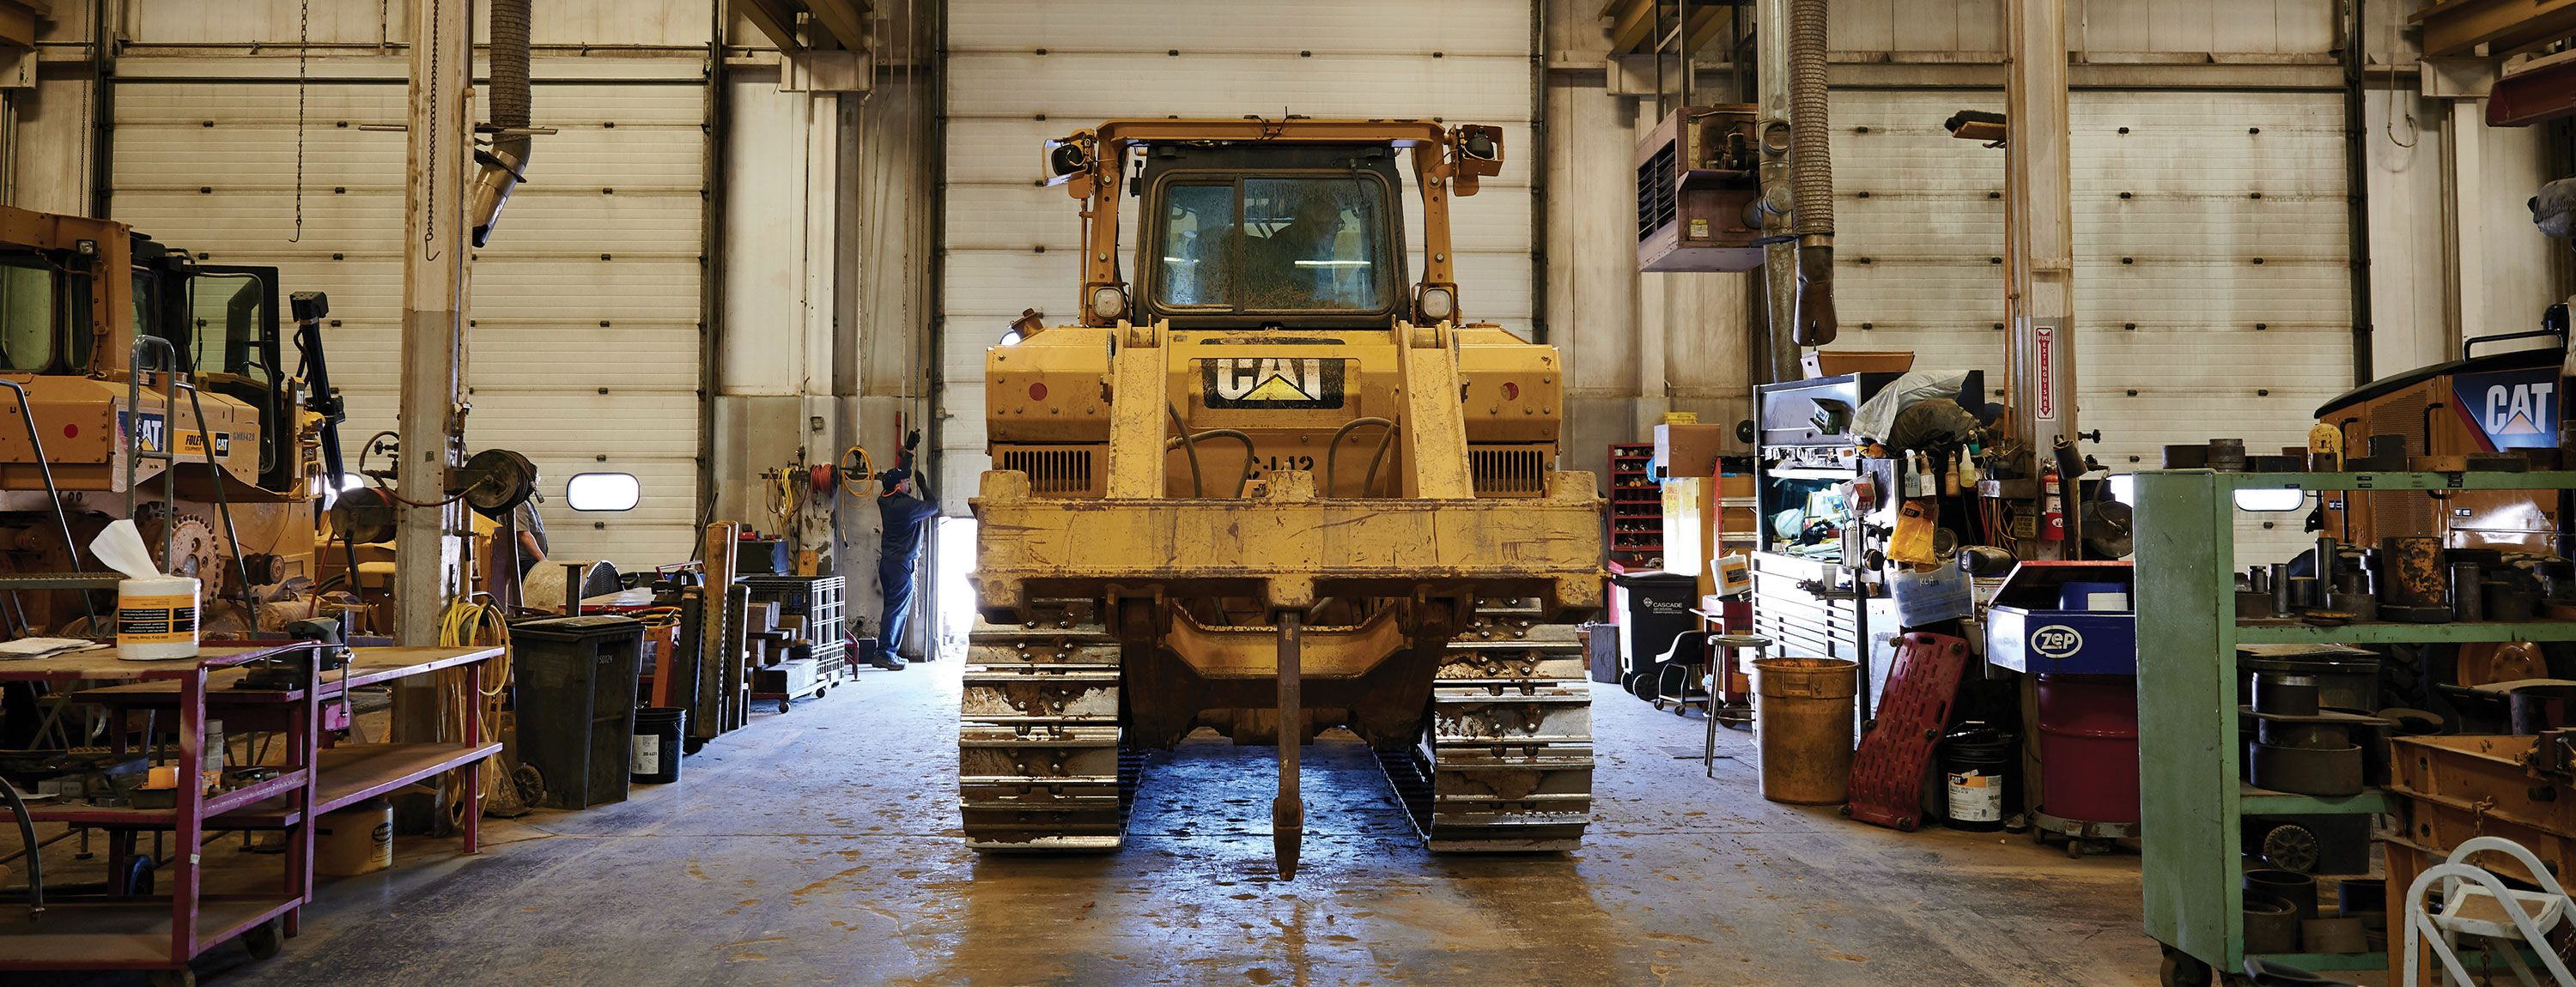 Rebuild your machine, power train, commercial engine, hydraulic system or major components